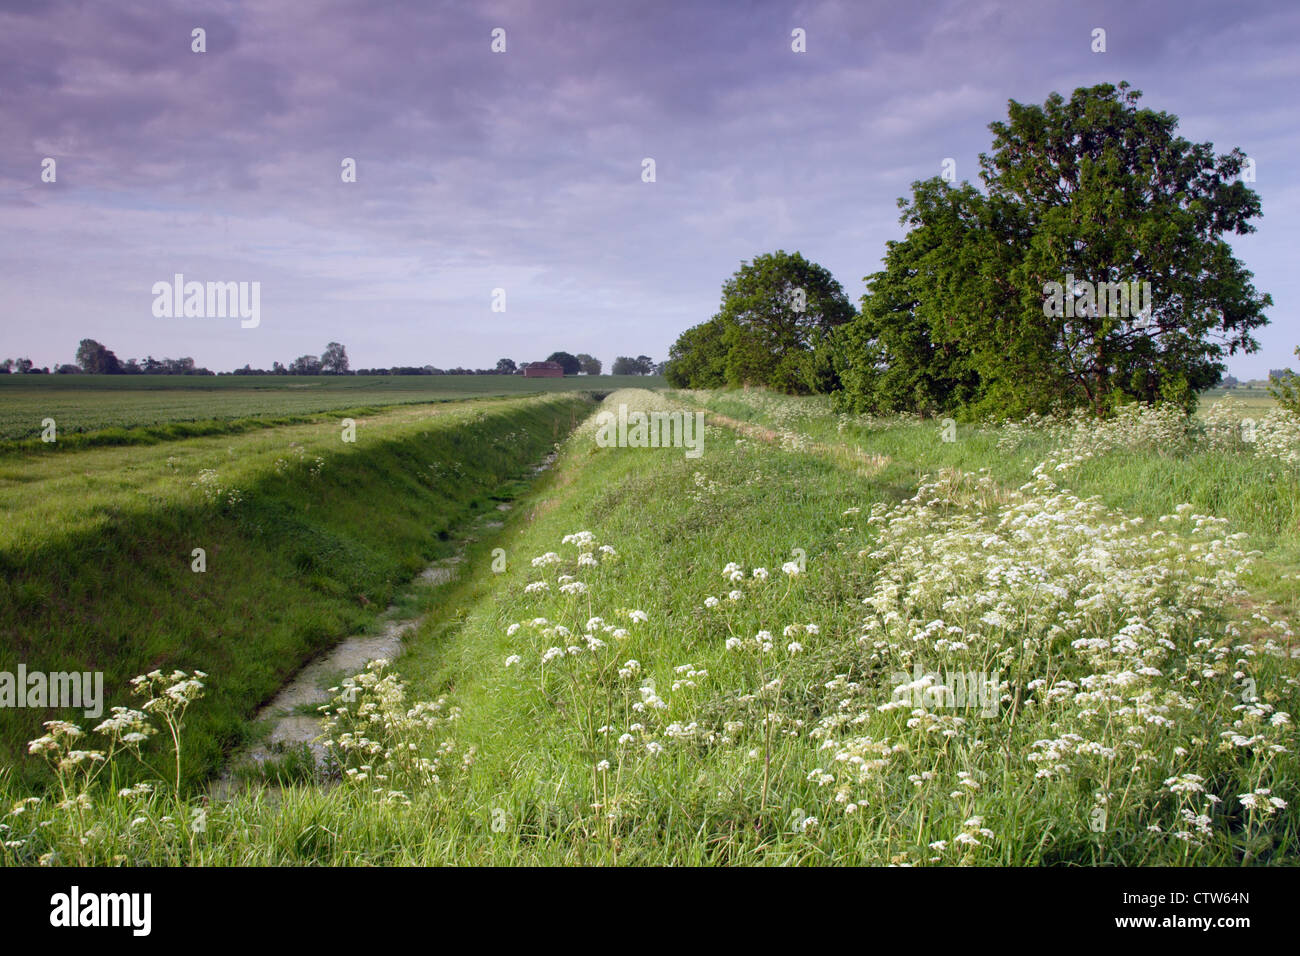 Drainage ditches and farmland of the Cambridgeshire Fens, near Chatteris, England, UK - Stock Image